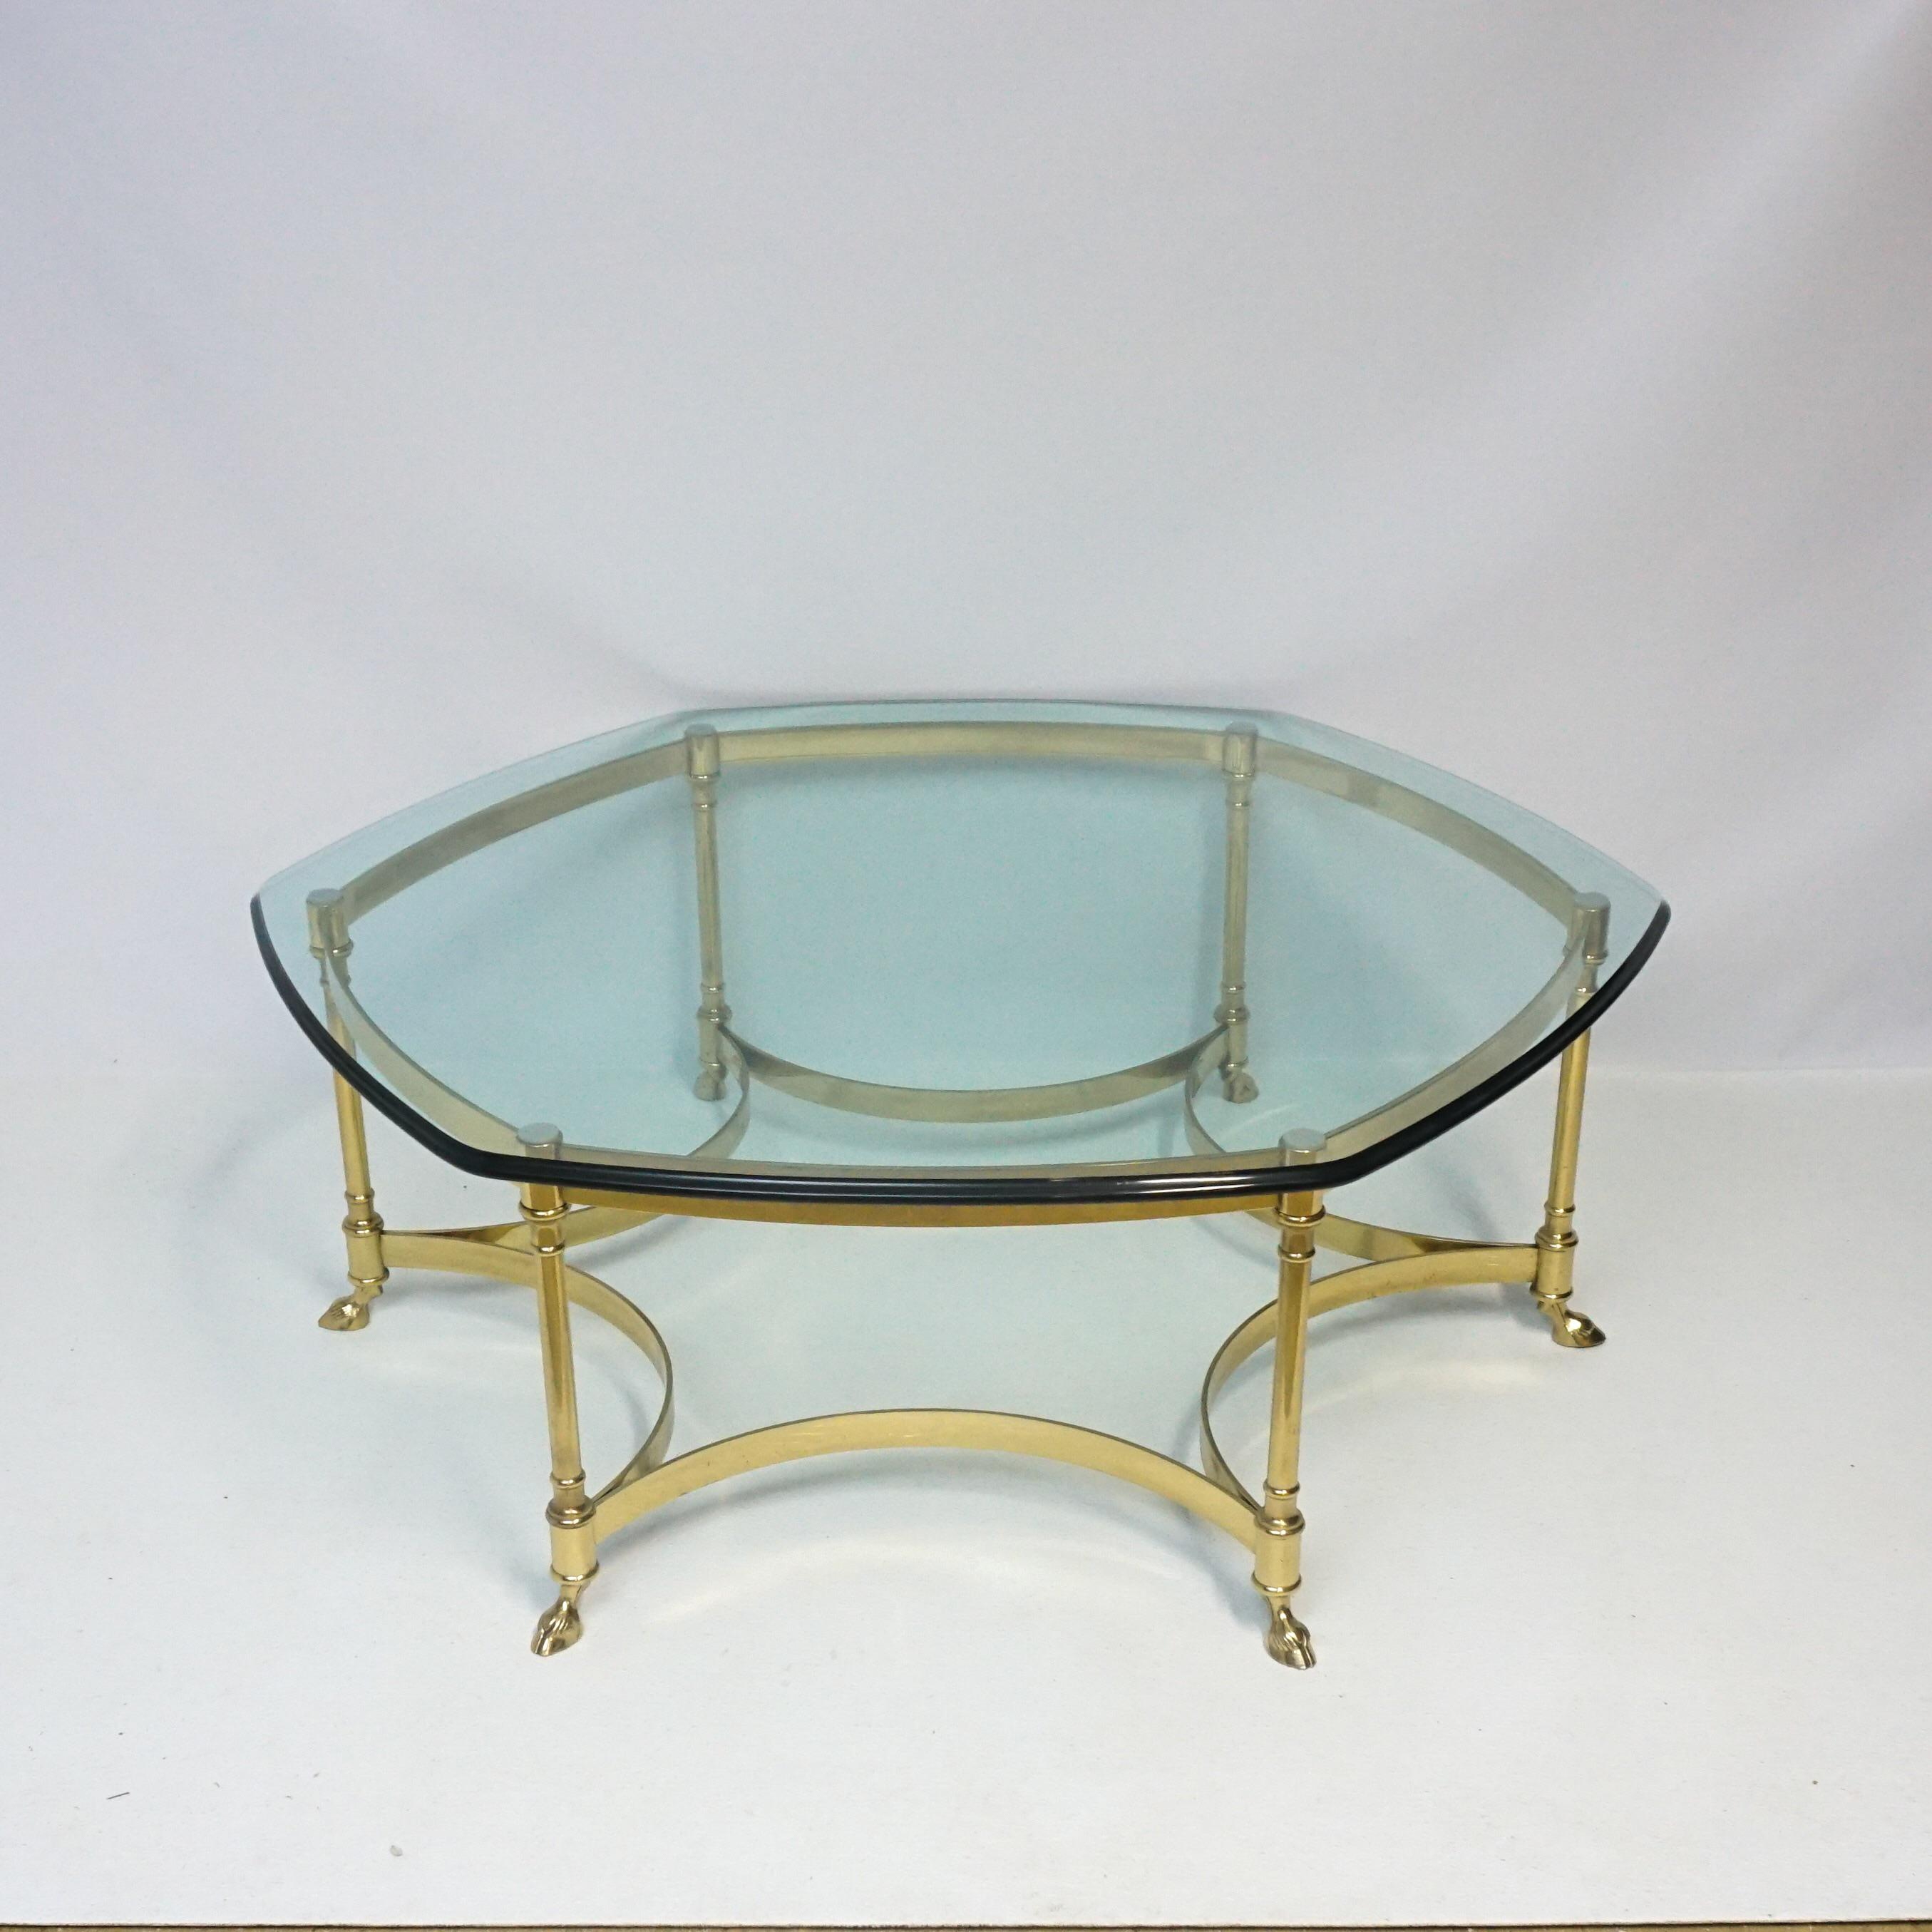 Merveilleux Labarge Brass And Glass Octagon Coffee Table Hoof Foot   Image 7 Of 7